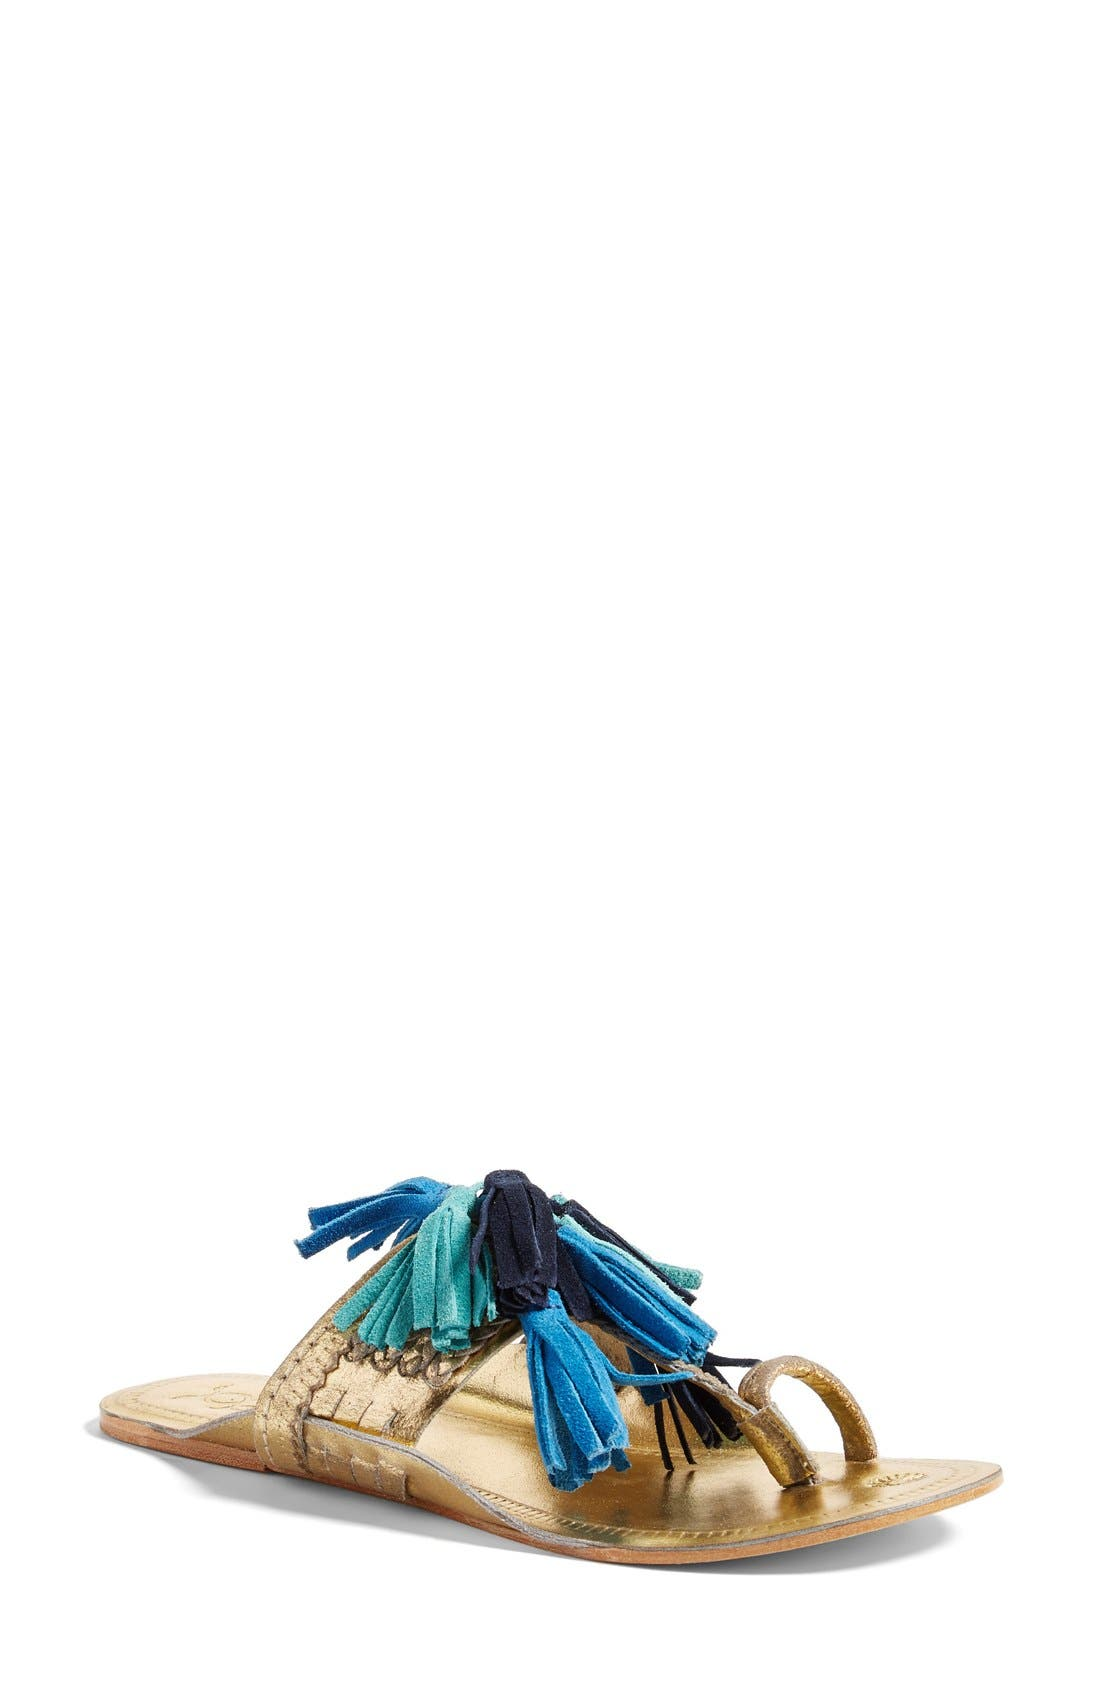 Scaramouch Tassel Sandal,                         Main,                         color, Blue Multi/ Gold